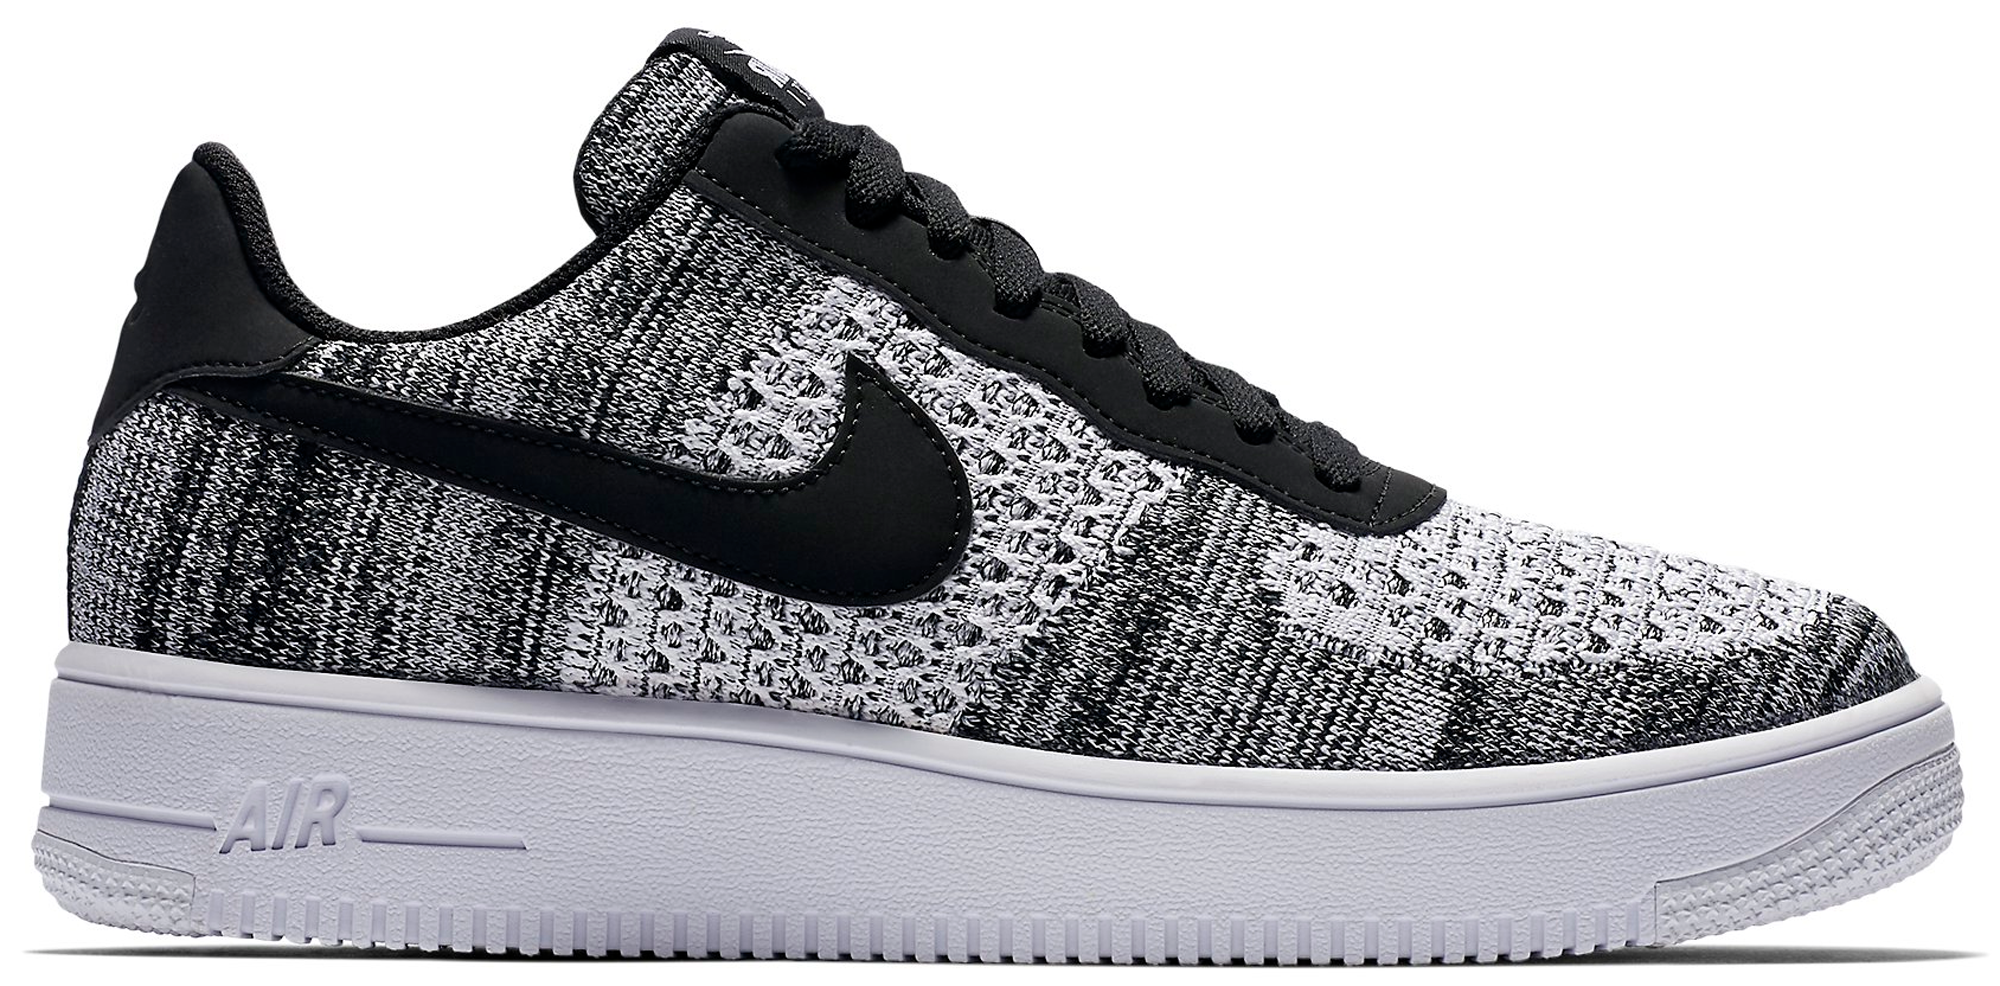 Air Force 1 Flyknit 2 Black Pure Platinum